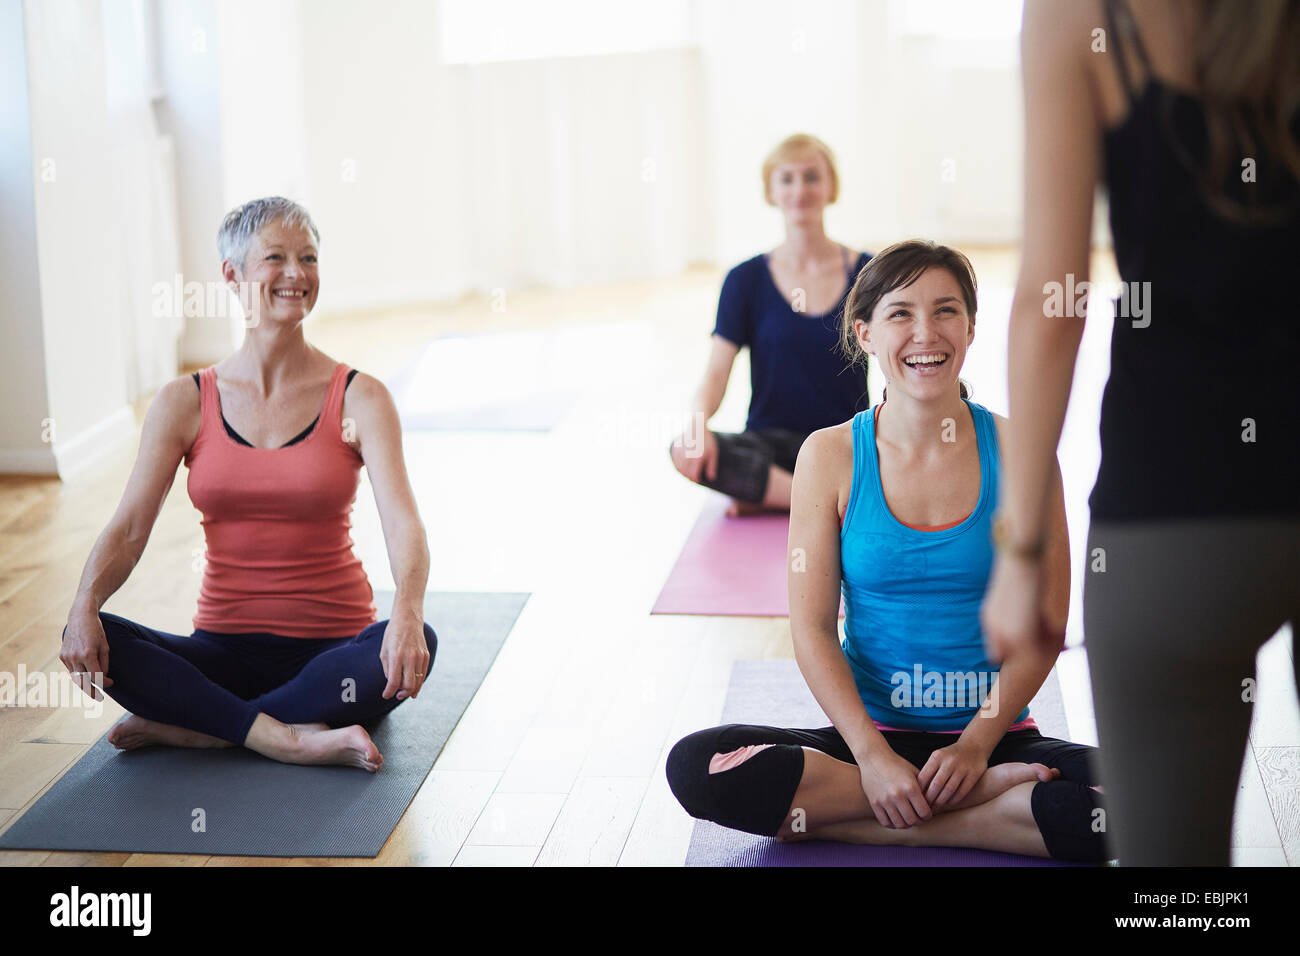 Female students watching and listening to tutor in pilates class - Stock Image